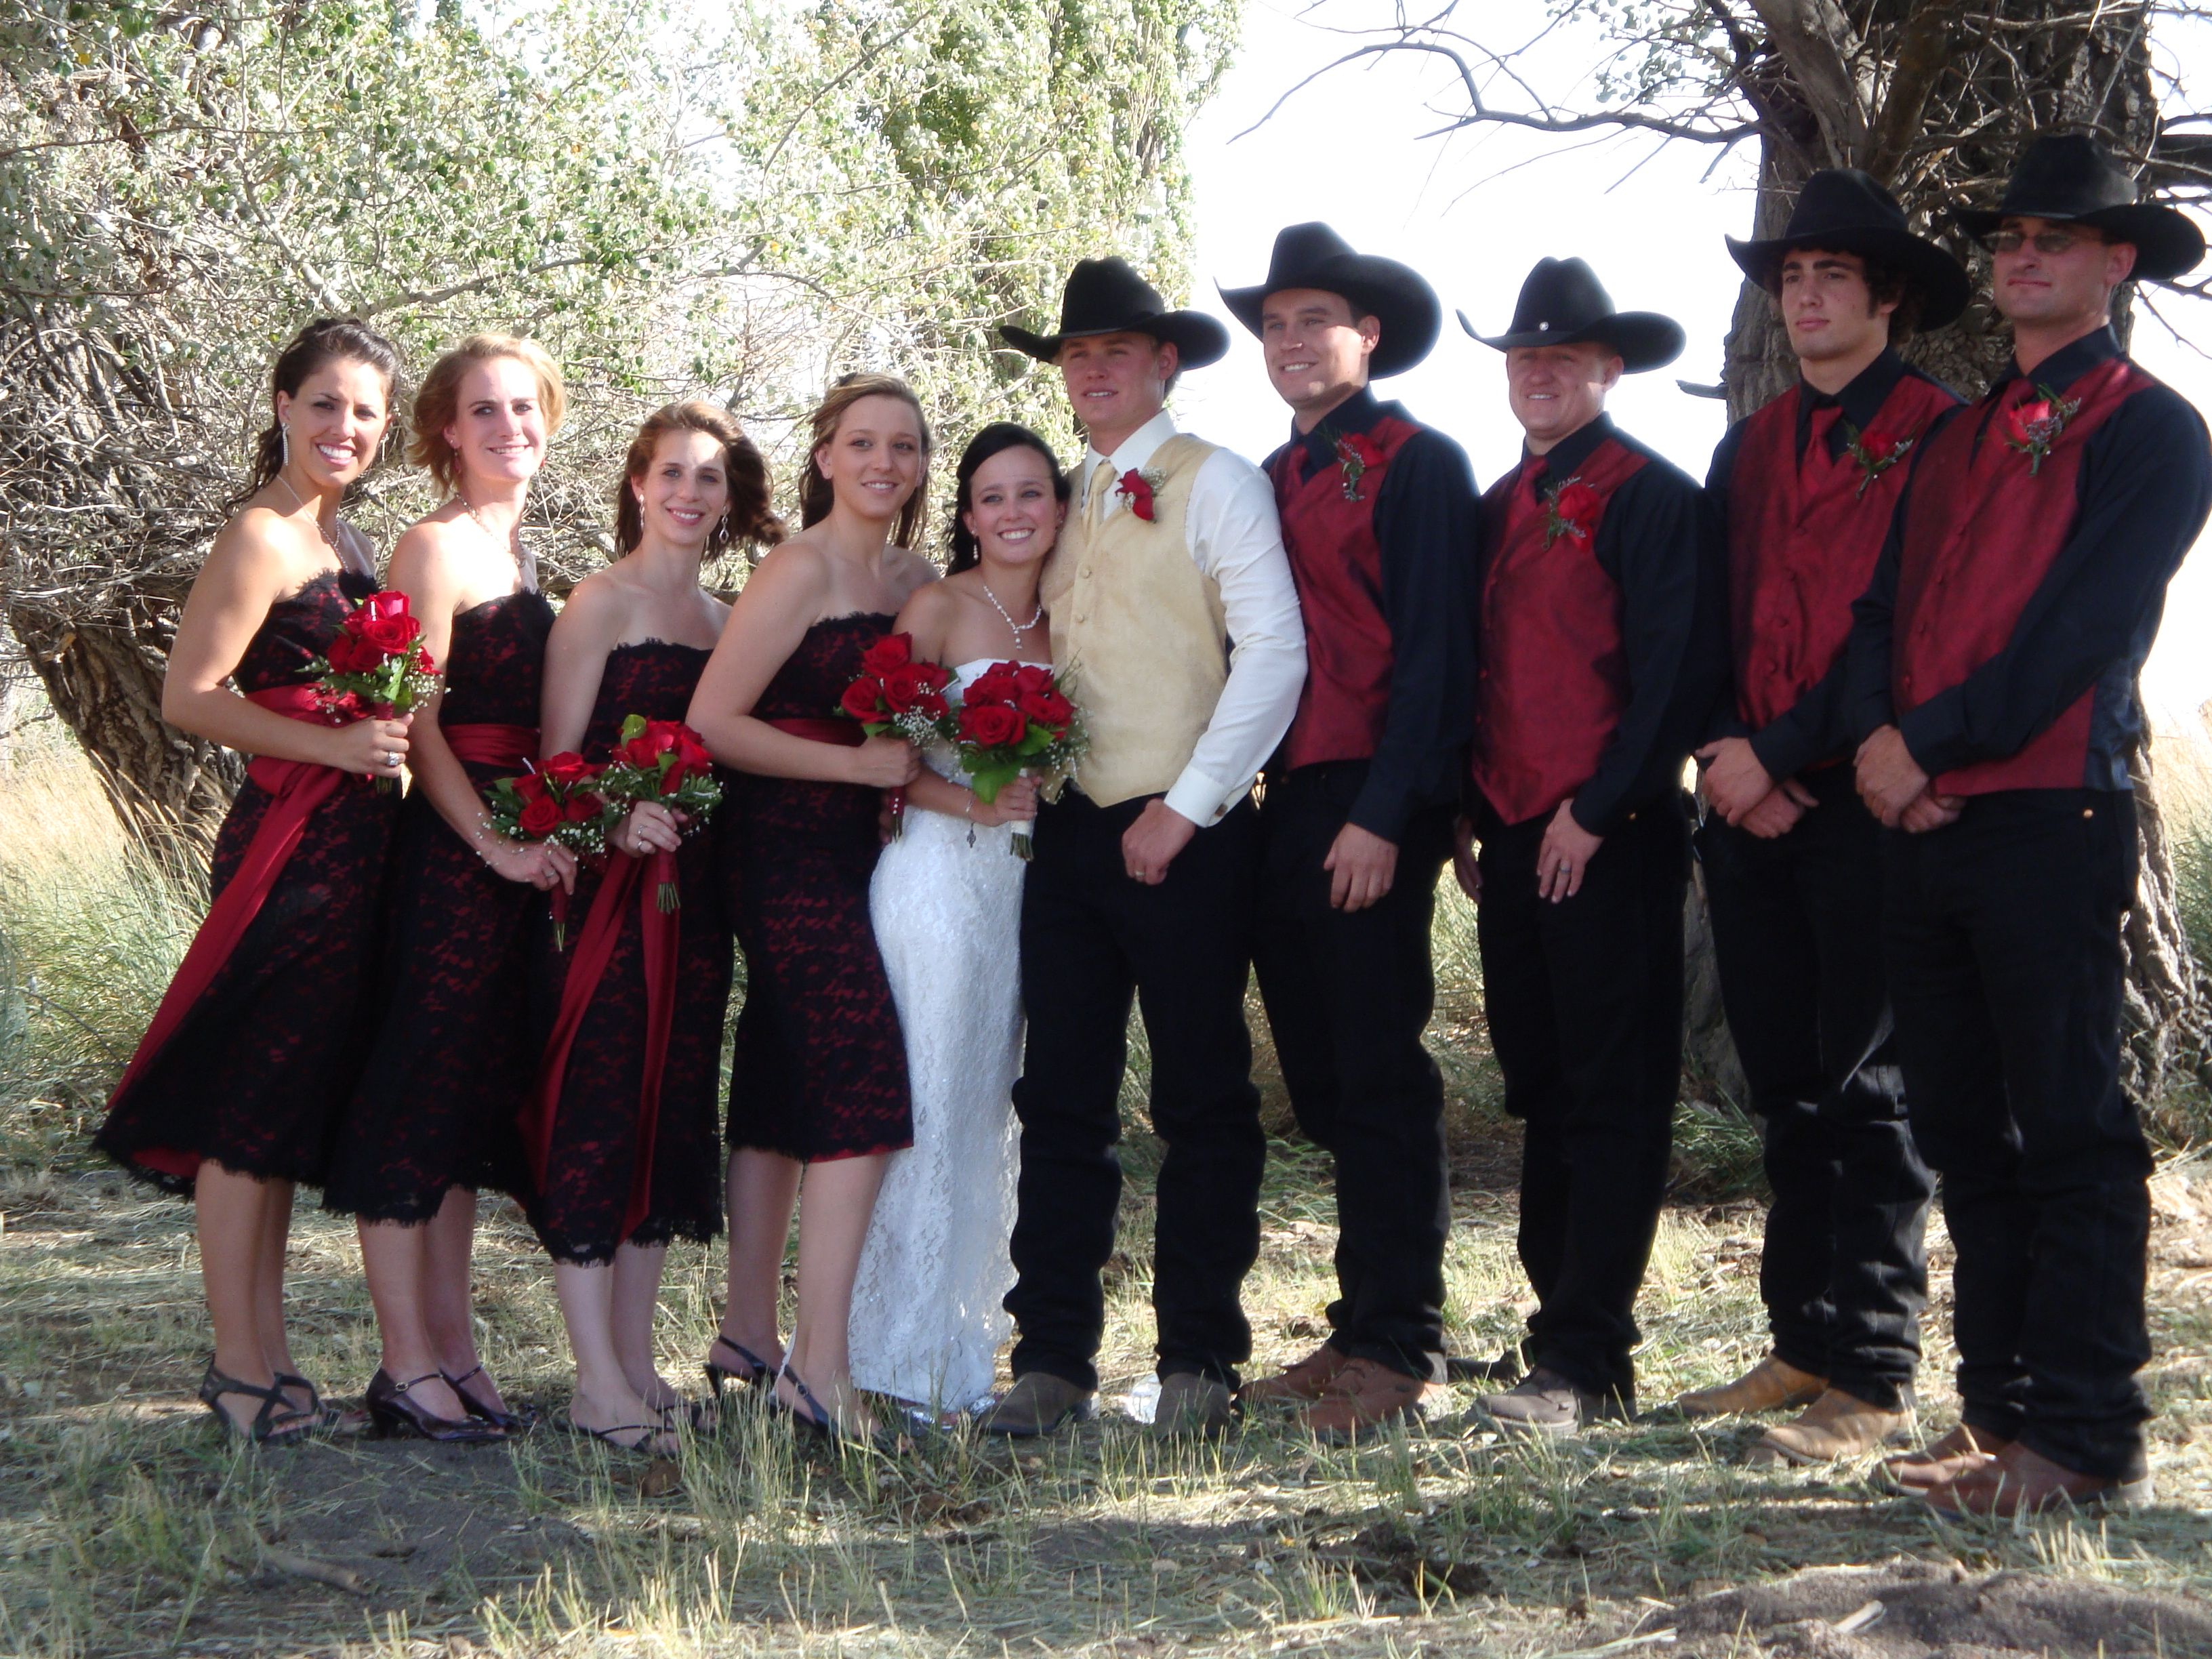 Casual Wedding Attire For Groom And Groomsmen Cowboy Wedding Attire Groom And Groomsmen Photography By Verdi Love Is Forever Pinterest Cowboy